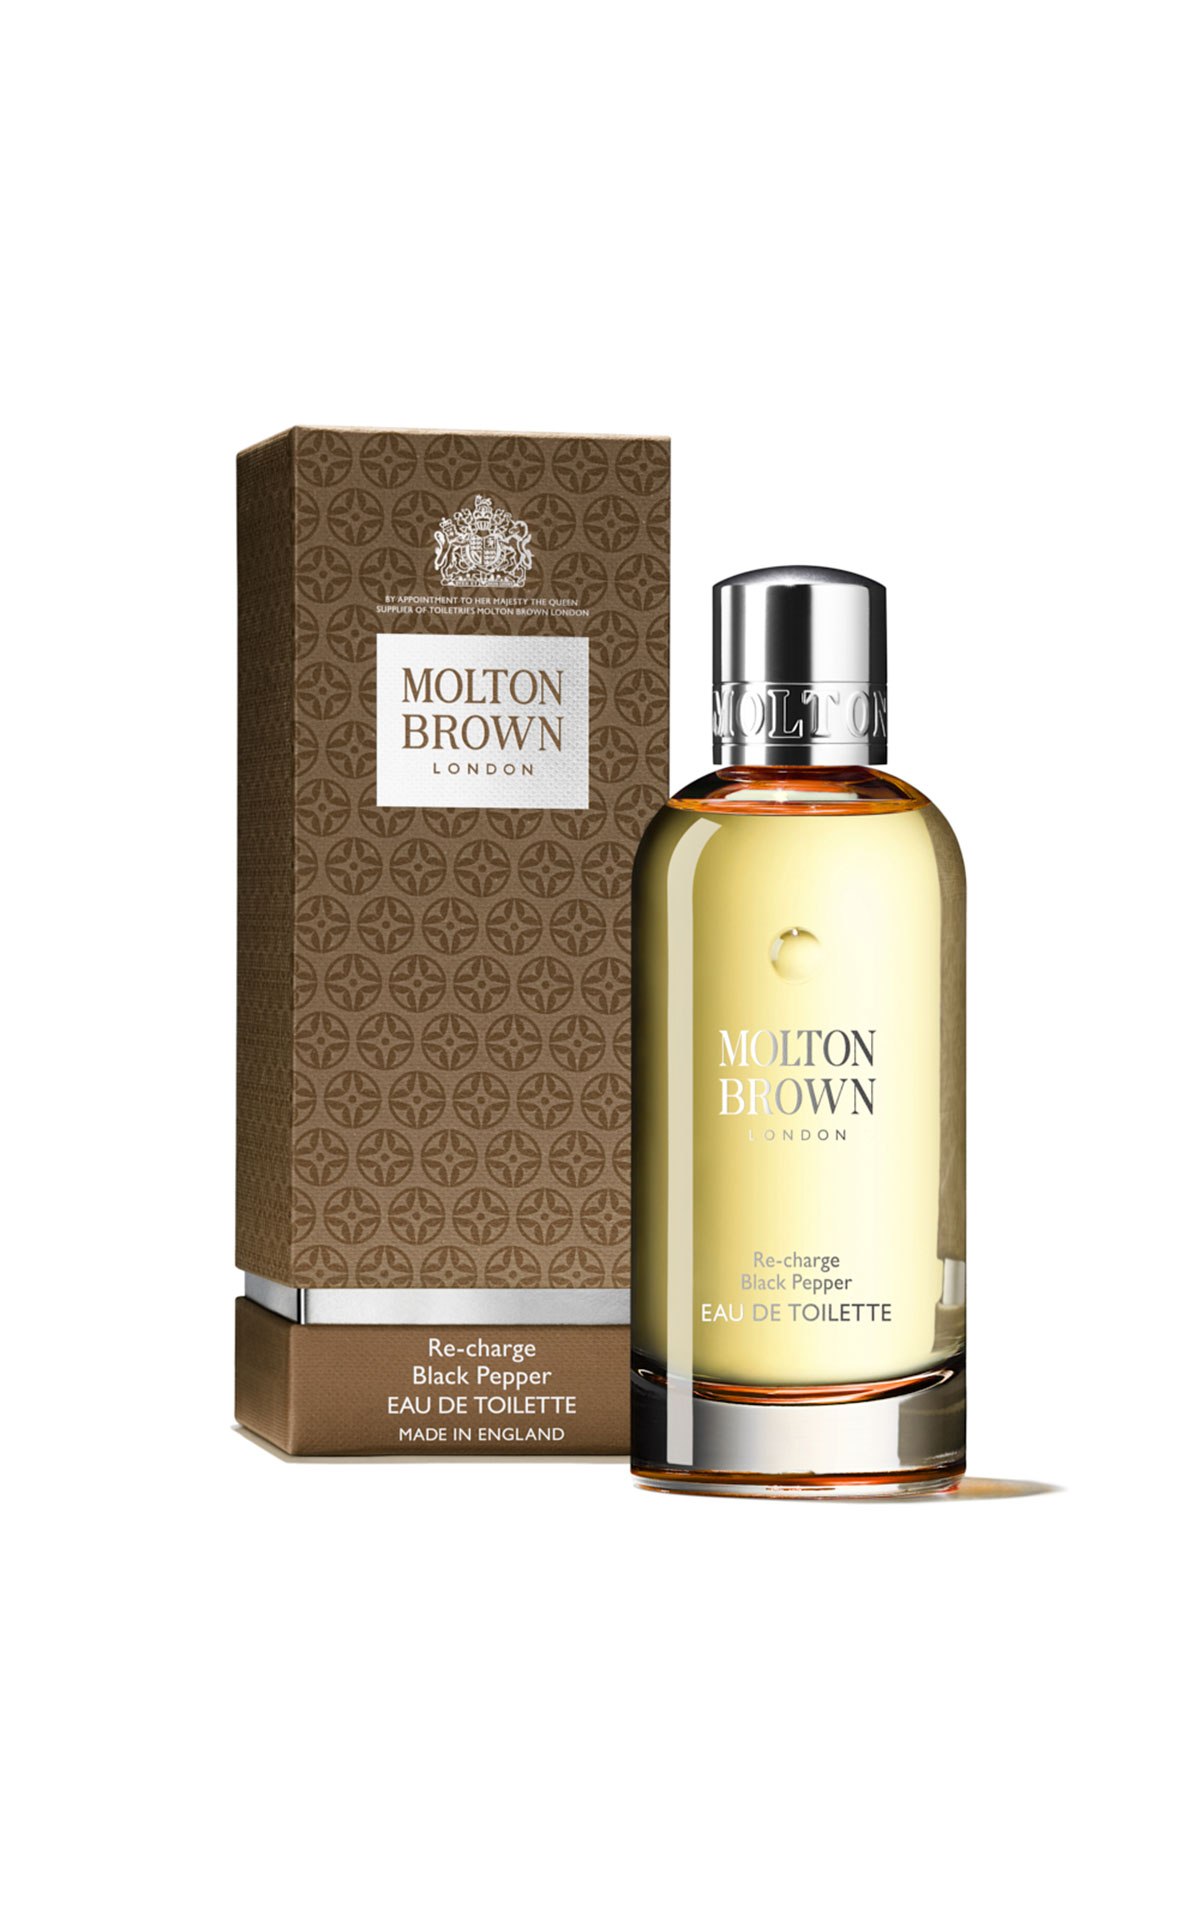 Molton Brown Re-charge black pepper eau de toilette 100ml from Bicester Village